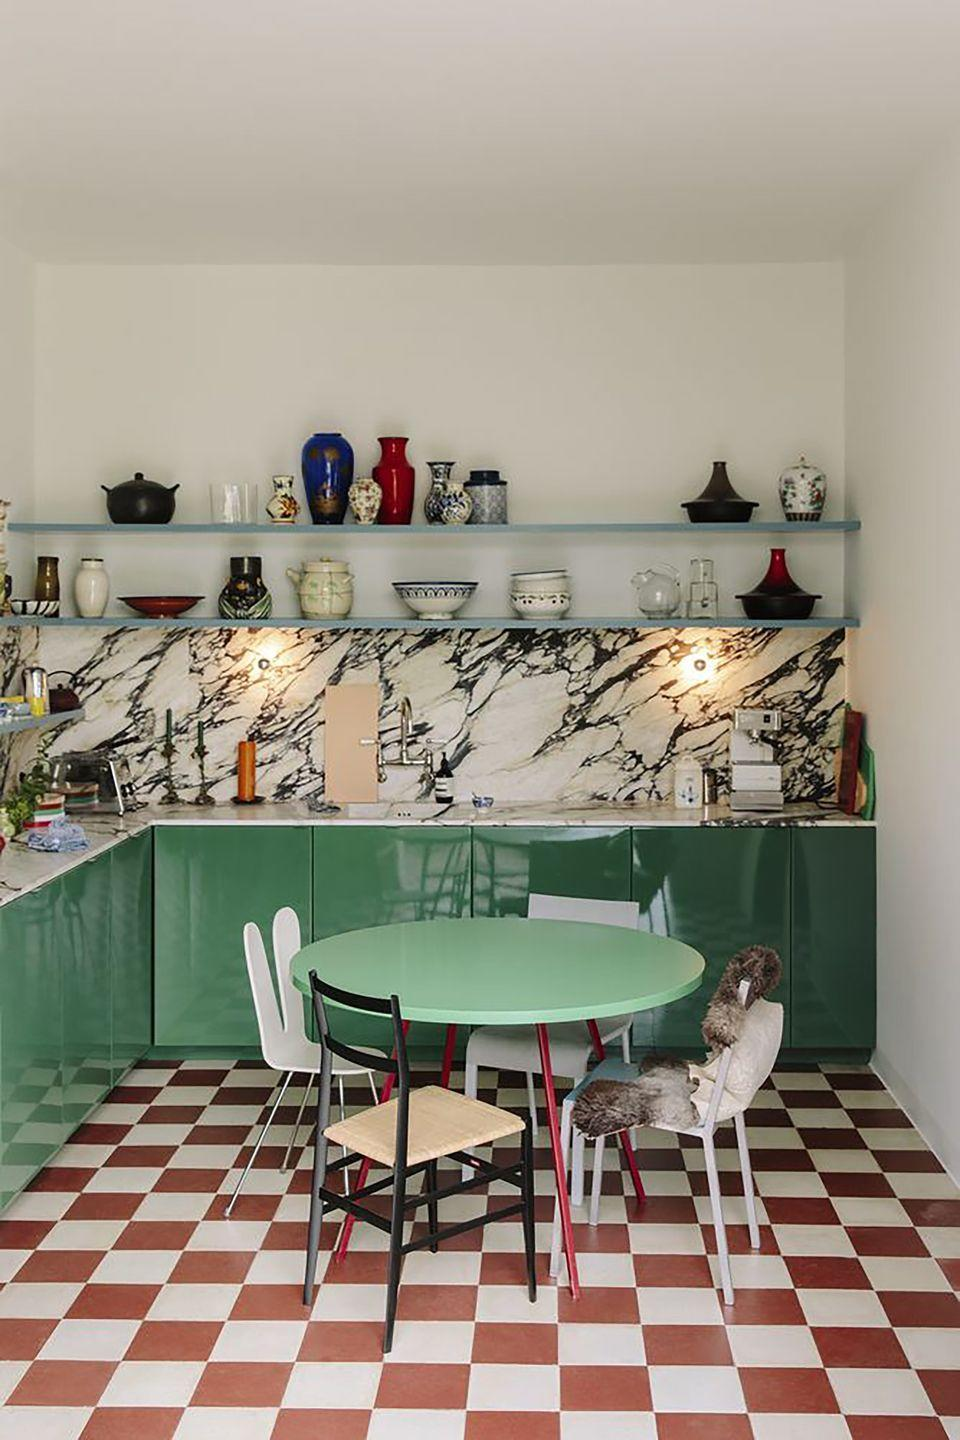 <p>With sea green enamel cabinets, richly veined marble and a red and white checkerboard floor that recalls a 1950s diner, this kitchen by Dutch design duo Muller Van Severen shows that just two hues can be enough to give a space a uniquely personal feel.</p>